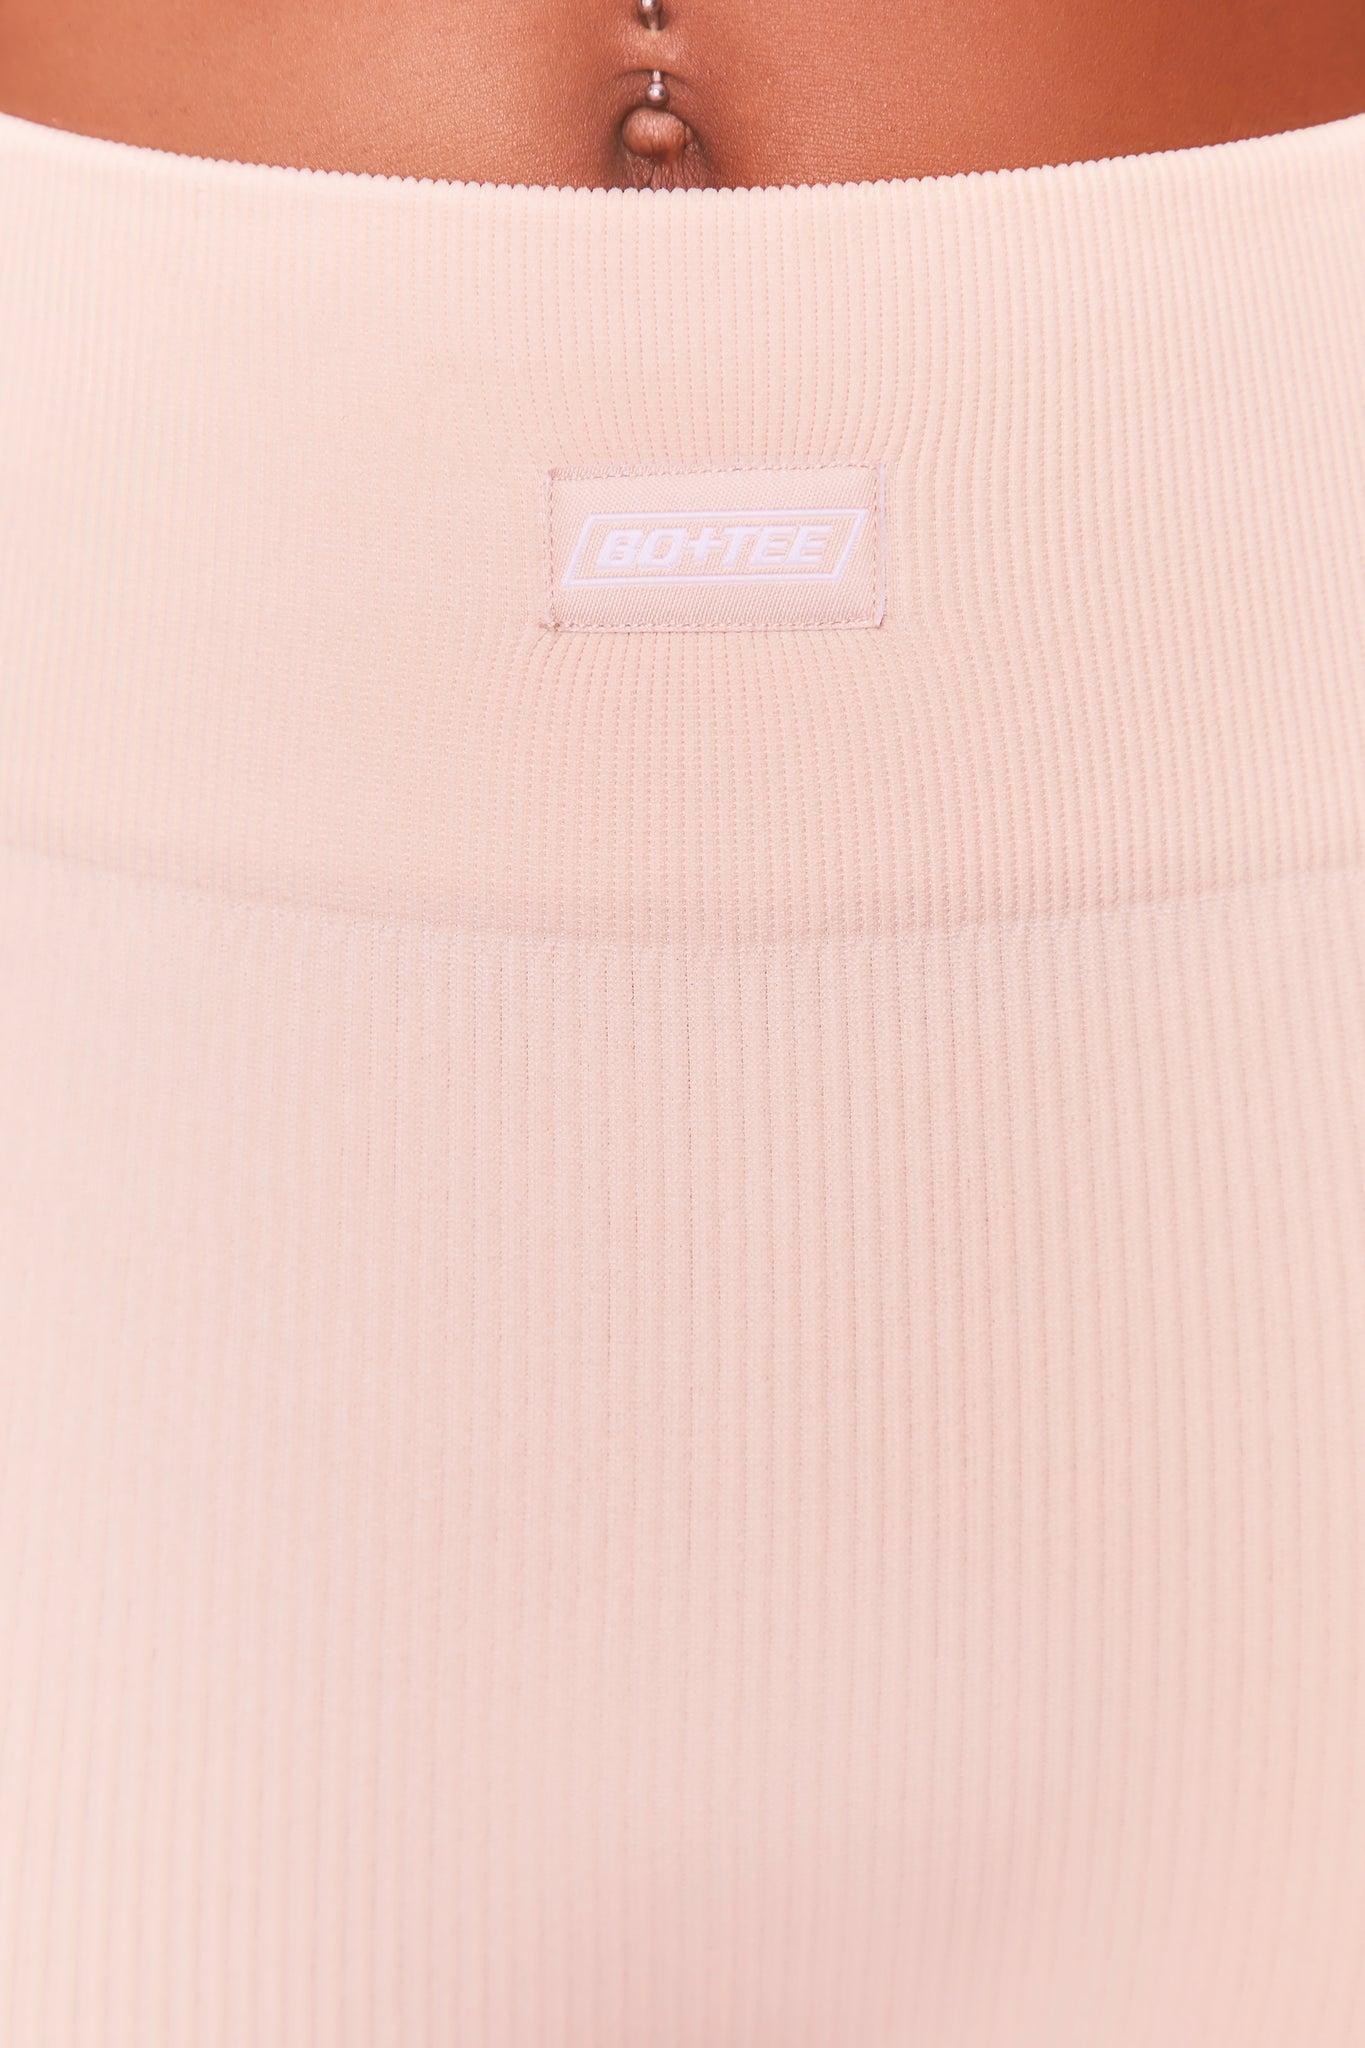 High waisted ribbed leggings in cream with central logo branding. Image 5 of 6.